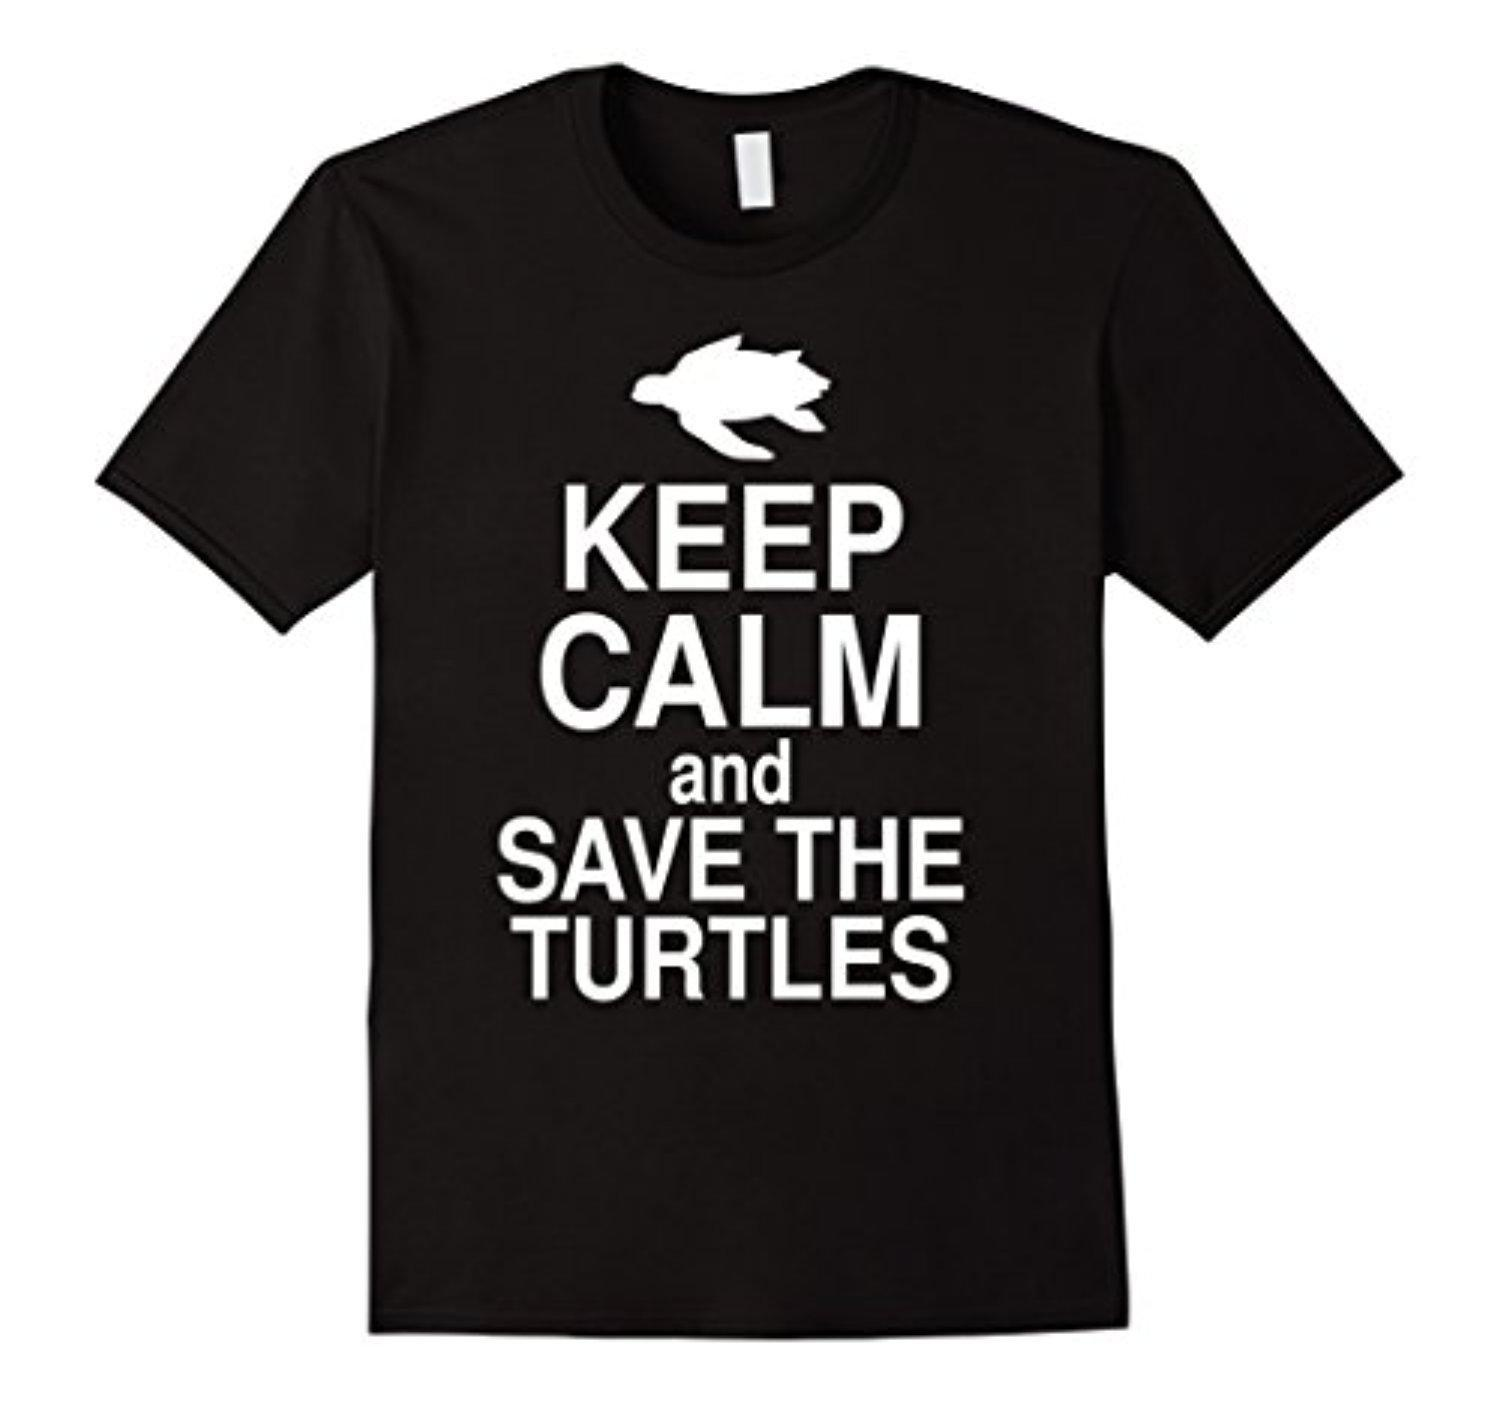 Men's Keep Calm And Save The Turtles Shirt 3XL Black